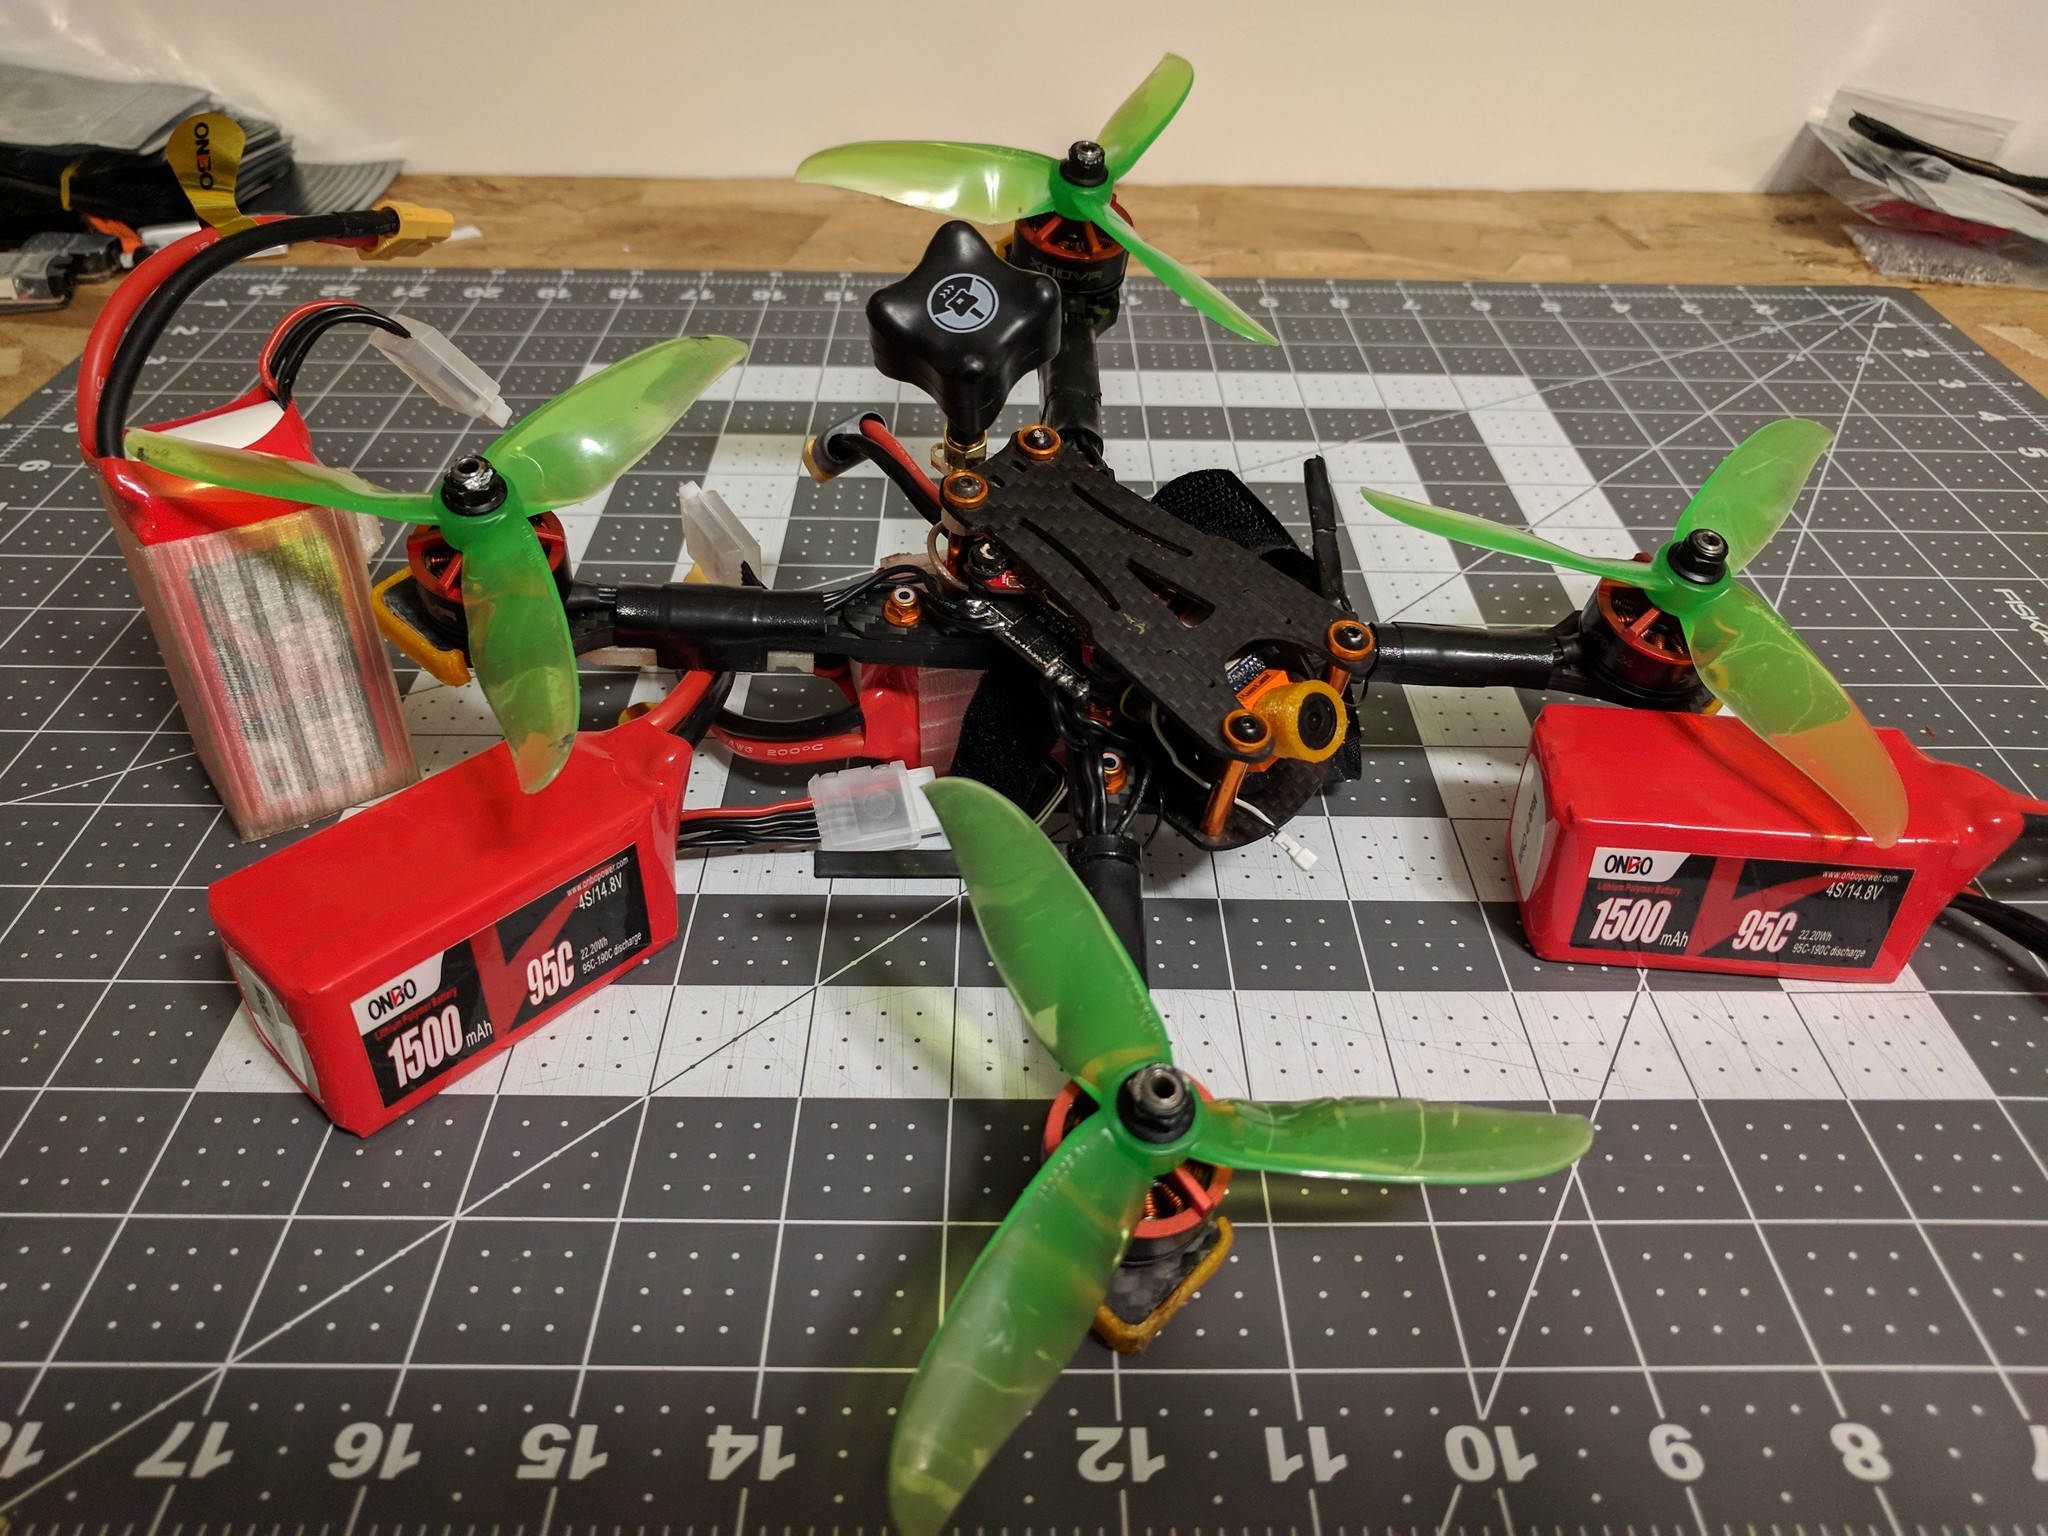 Jawz fpv quad for Team Onbo